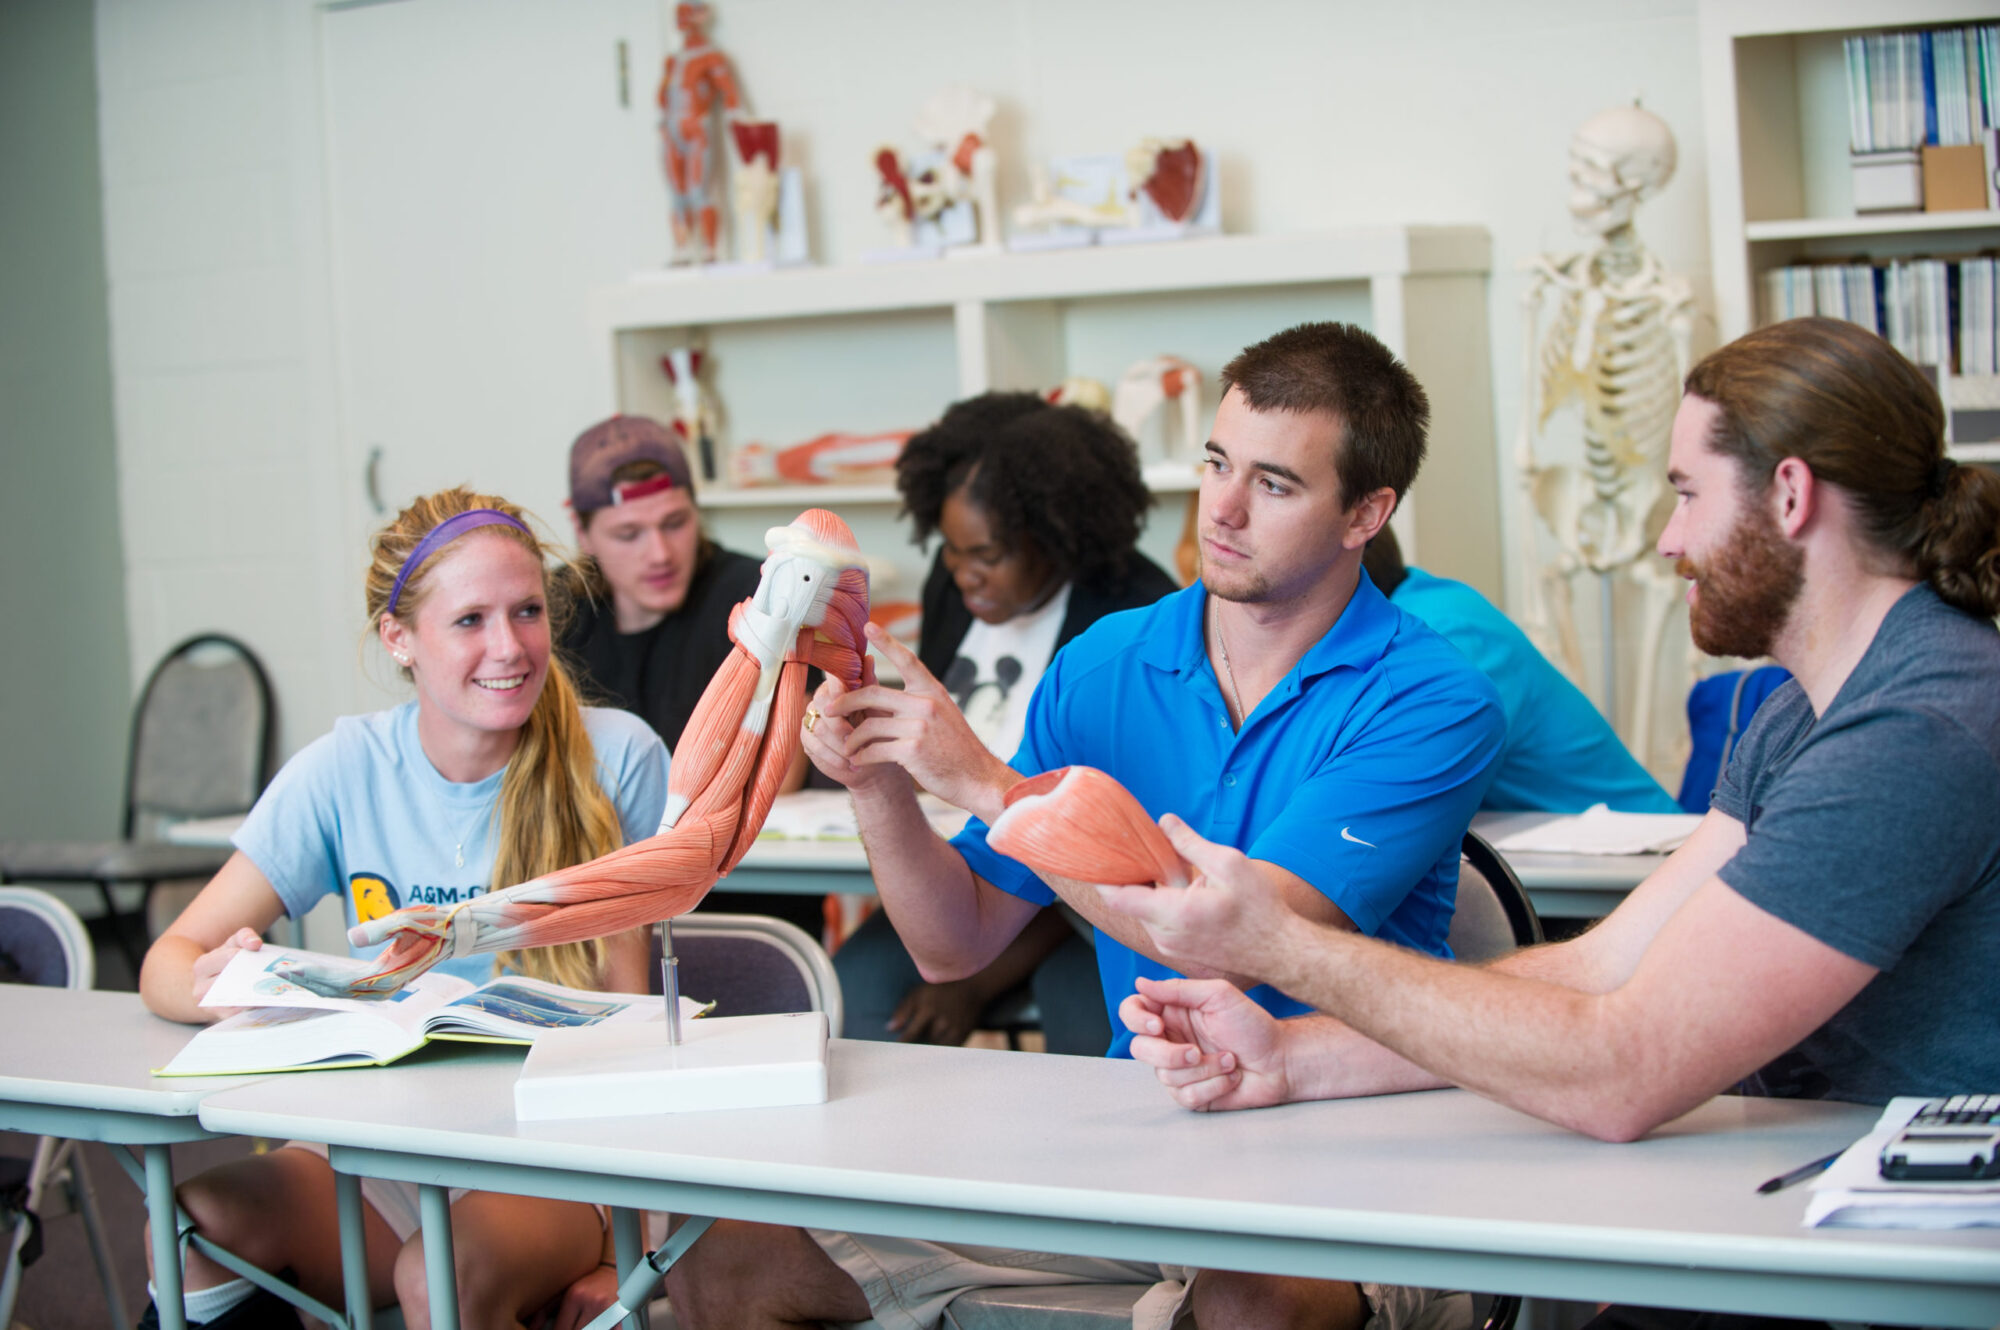 Students inspecting a skeleton with muscle structure.